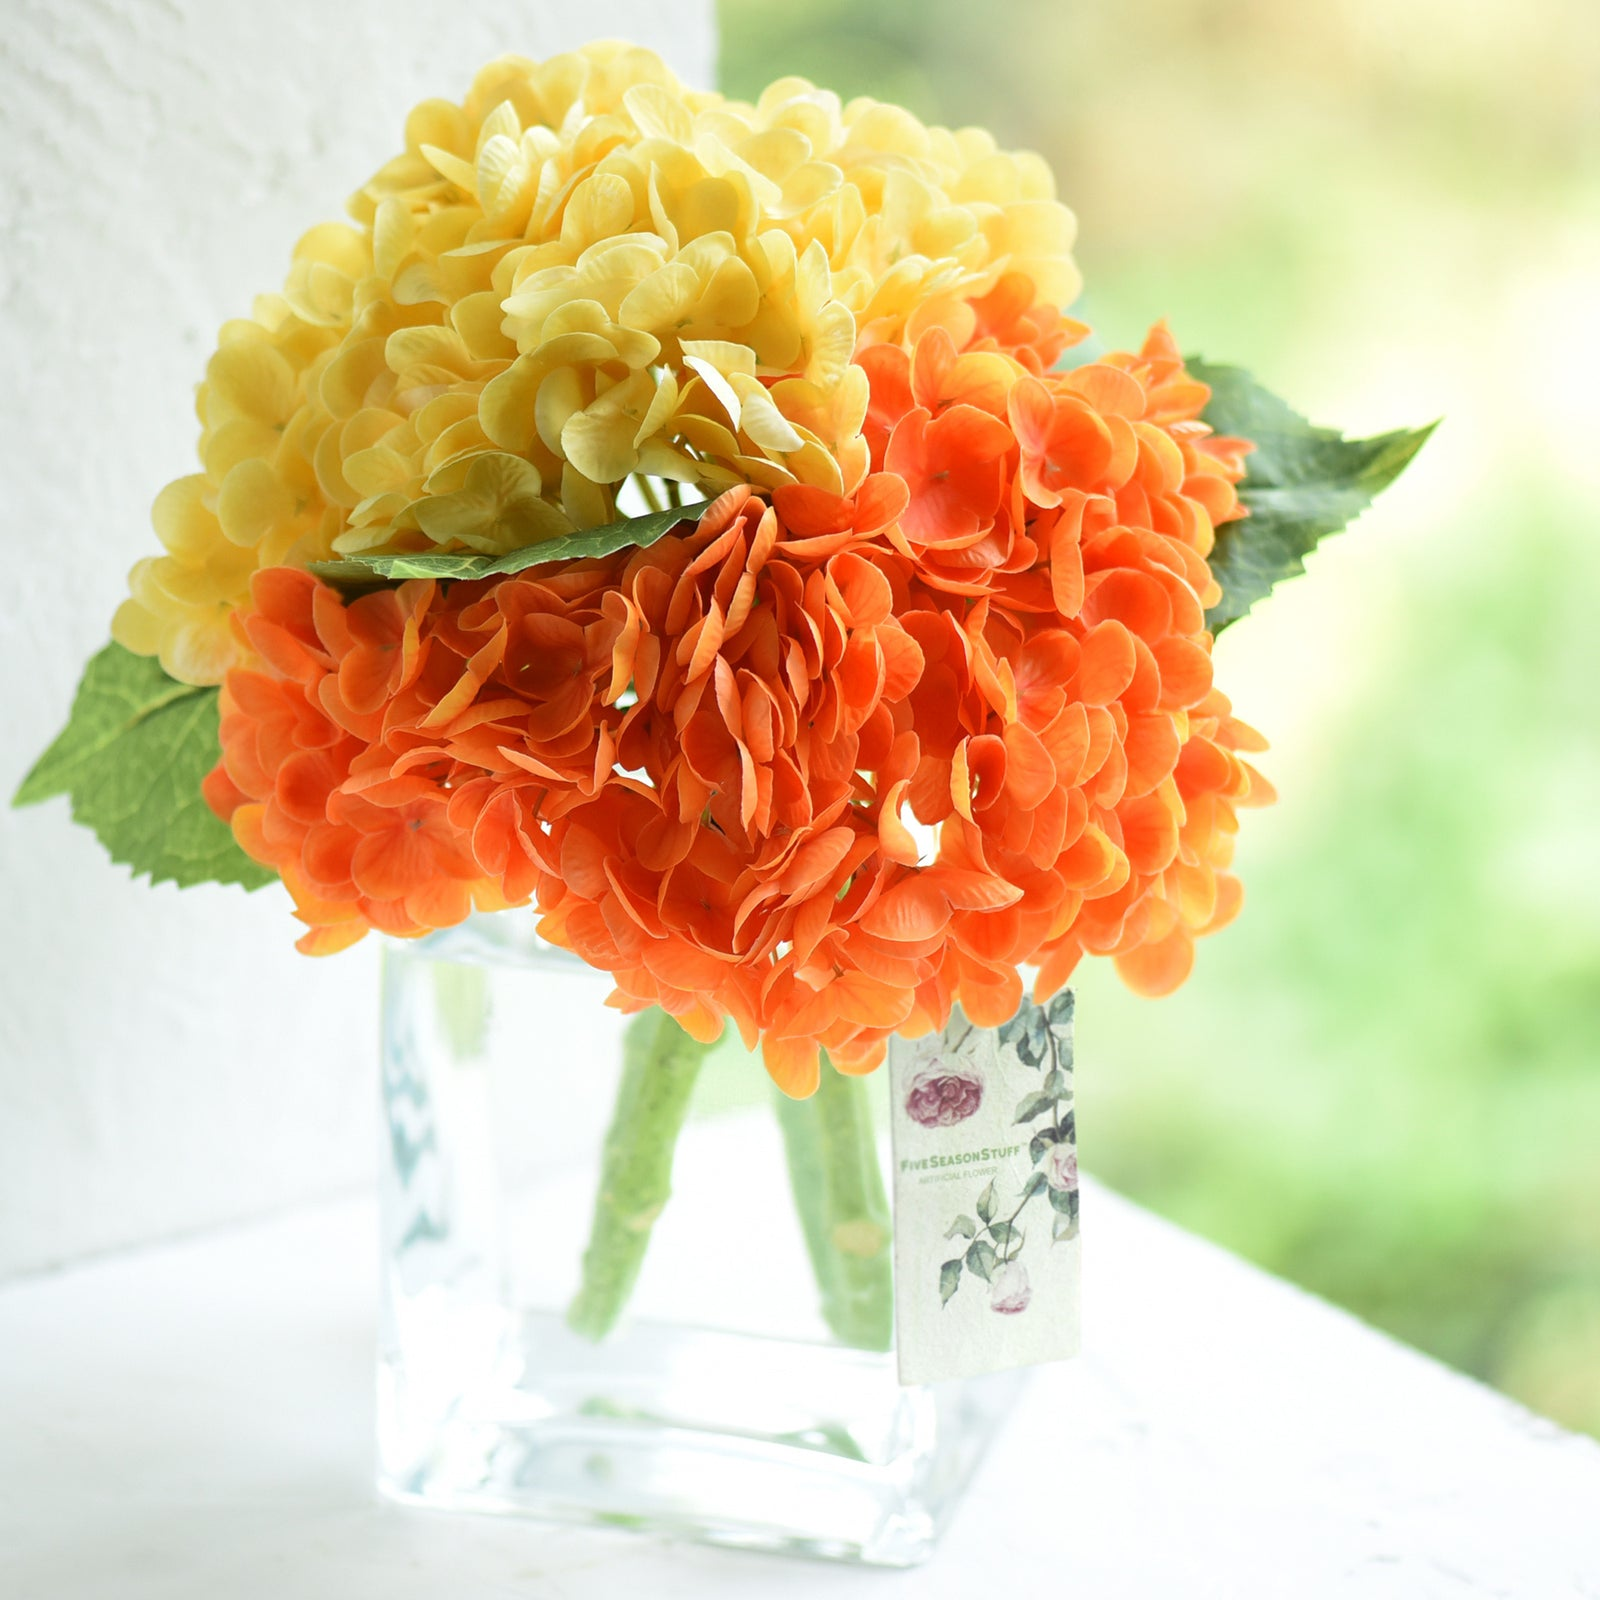 FiveSeasonStuff 2 Stems Real Touch Petals and Leaves Artificial Hydrangea Flowers Long Stem Floral Arrangement | for Wedding Bridal Party Home Décor DIY Floral Decoration (Yellow | Orange)